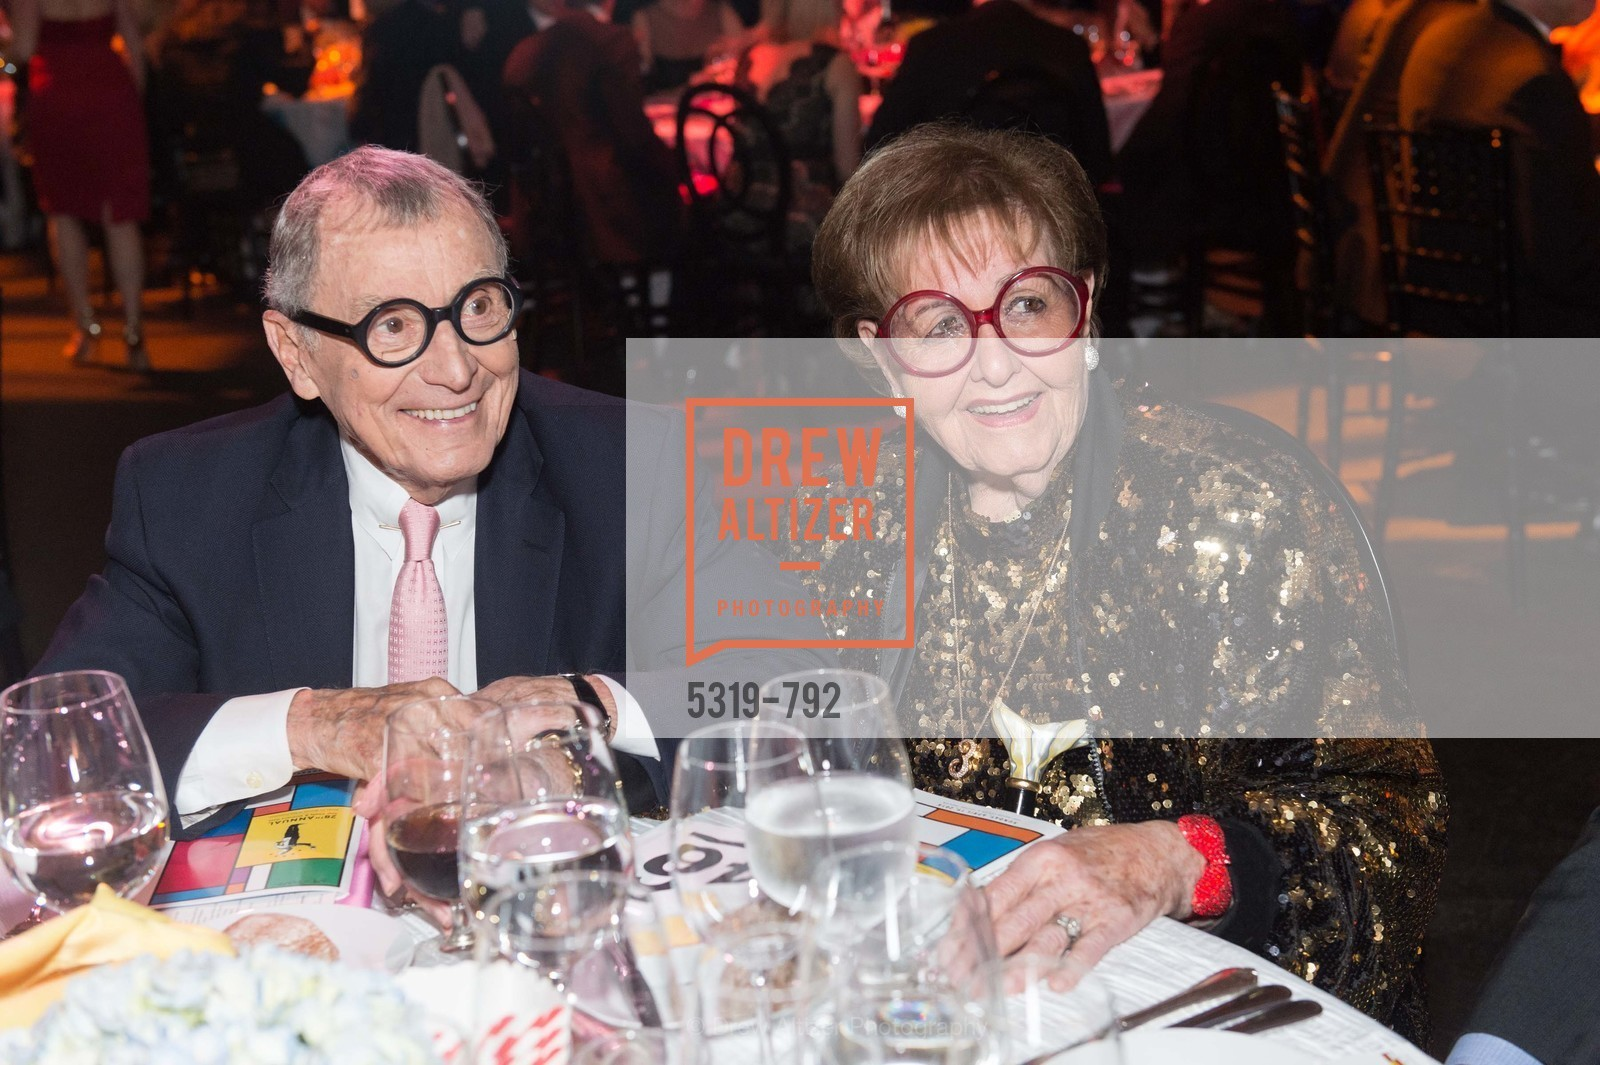 Angela Sangiacomo, Yvonne Sangiacomo, MEALS ON WHEELS OF SAN FRANCISCO'S 28th Annual Star Chefs and Vintners Gala, US, April 20th, 2015,Drew Altizer, Drew Altizer Photography, full-service agency, private events, San Francisco photographer, photographer california